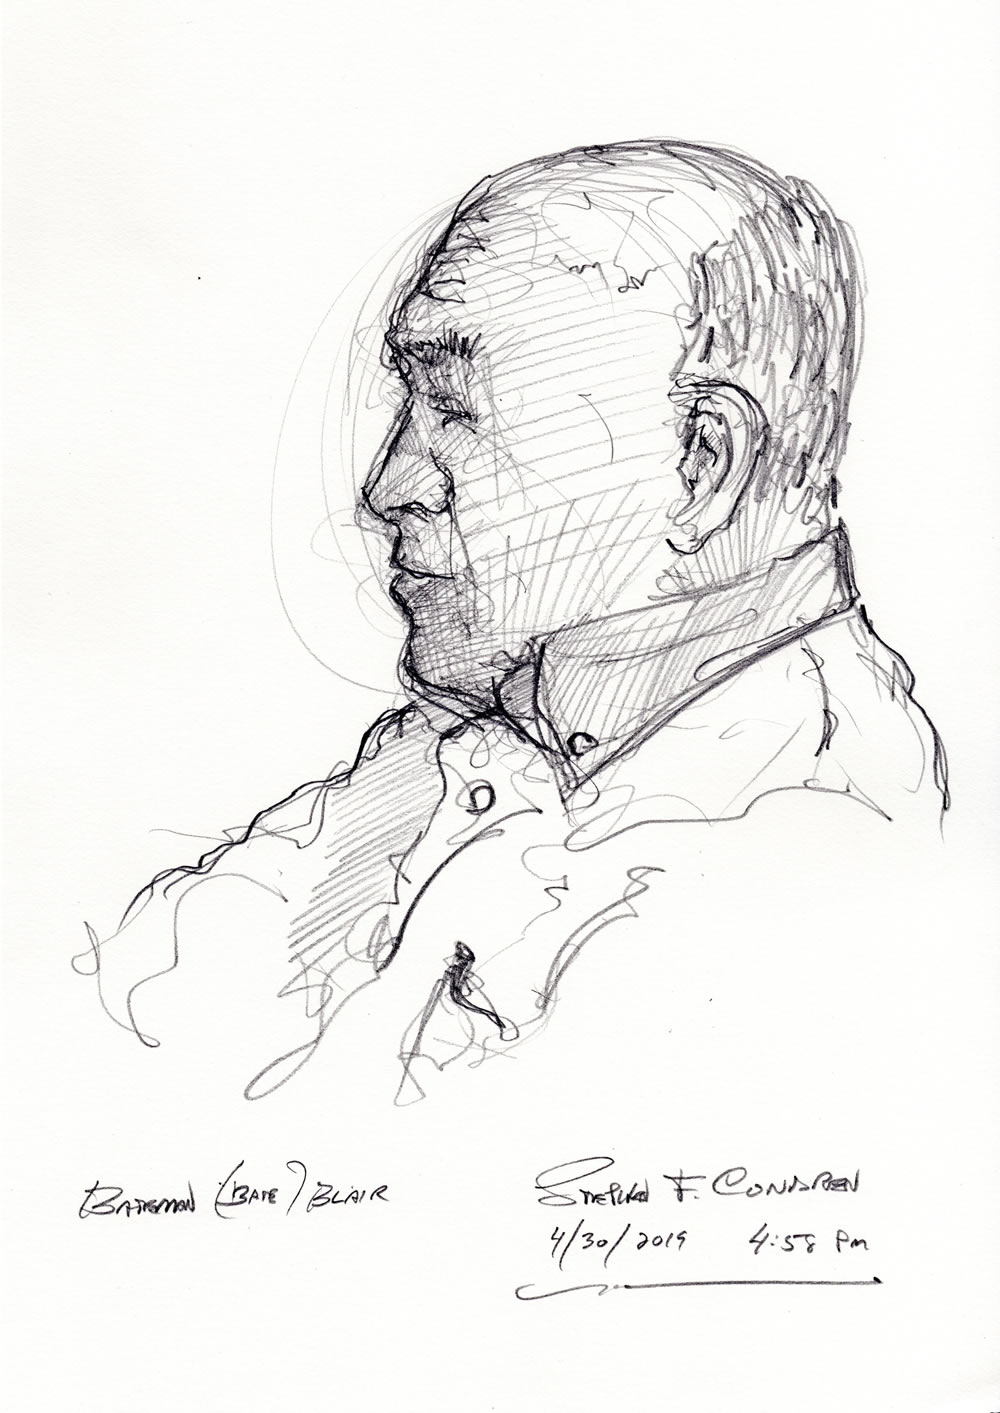 Bateman Blair #287Z drawing with prints by artist Stephen F. Condren at Condren Galleries.